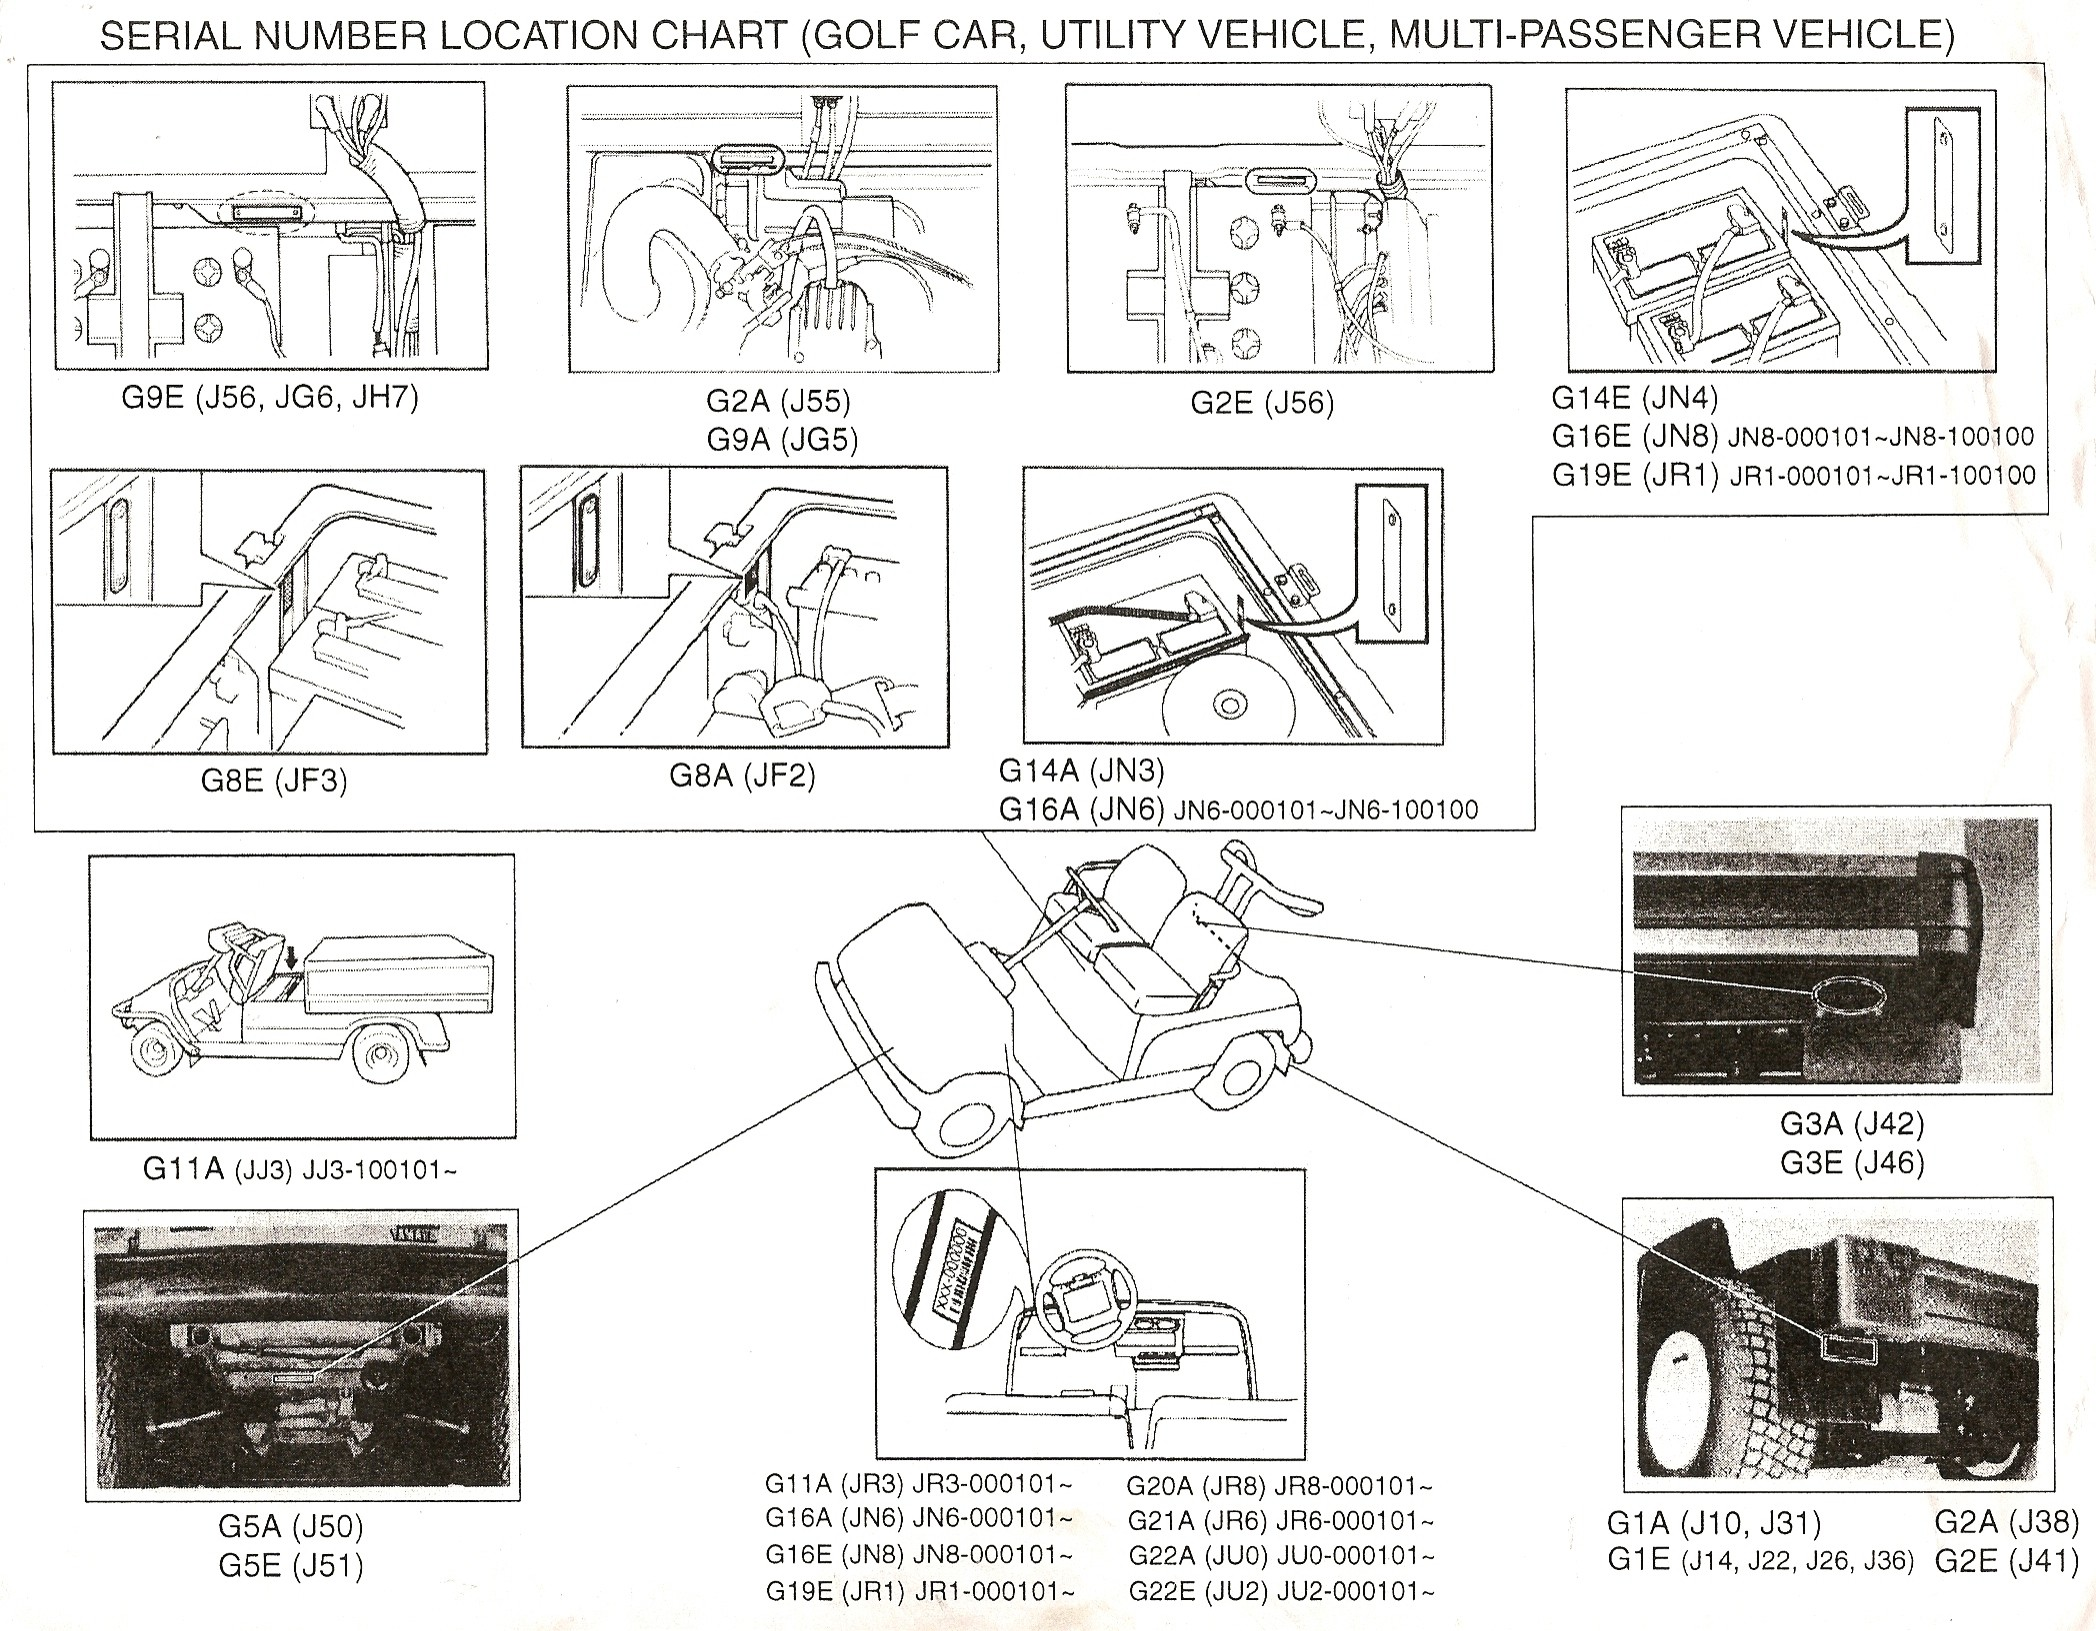 Web YAMAHA GOLF CAR SERIAL NUMBER LOCATOR yamaha serial number locator yamaha golf cart engine diagram at eliteediting.co